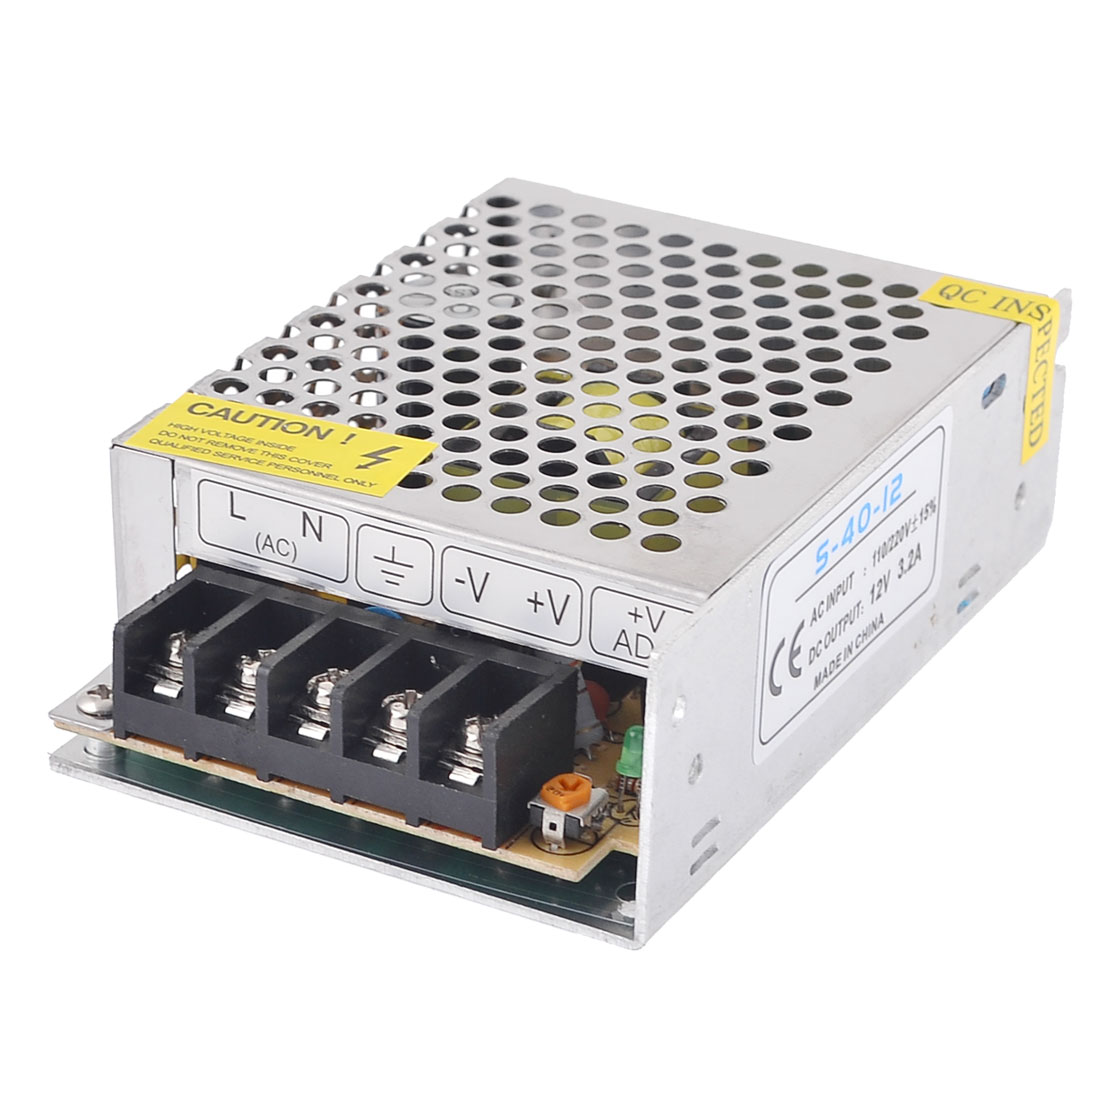 AC 110/220V 12VDC 3.2A 38W Metal Housing Switching Power Supply Converter